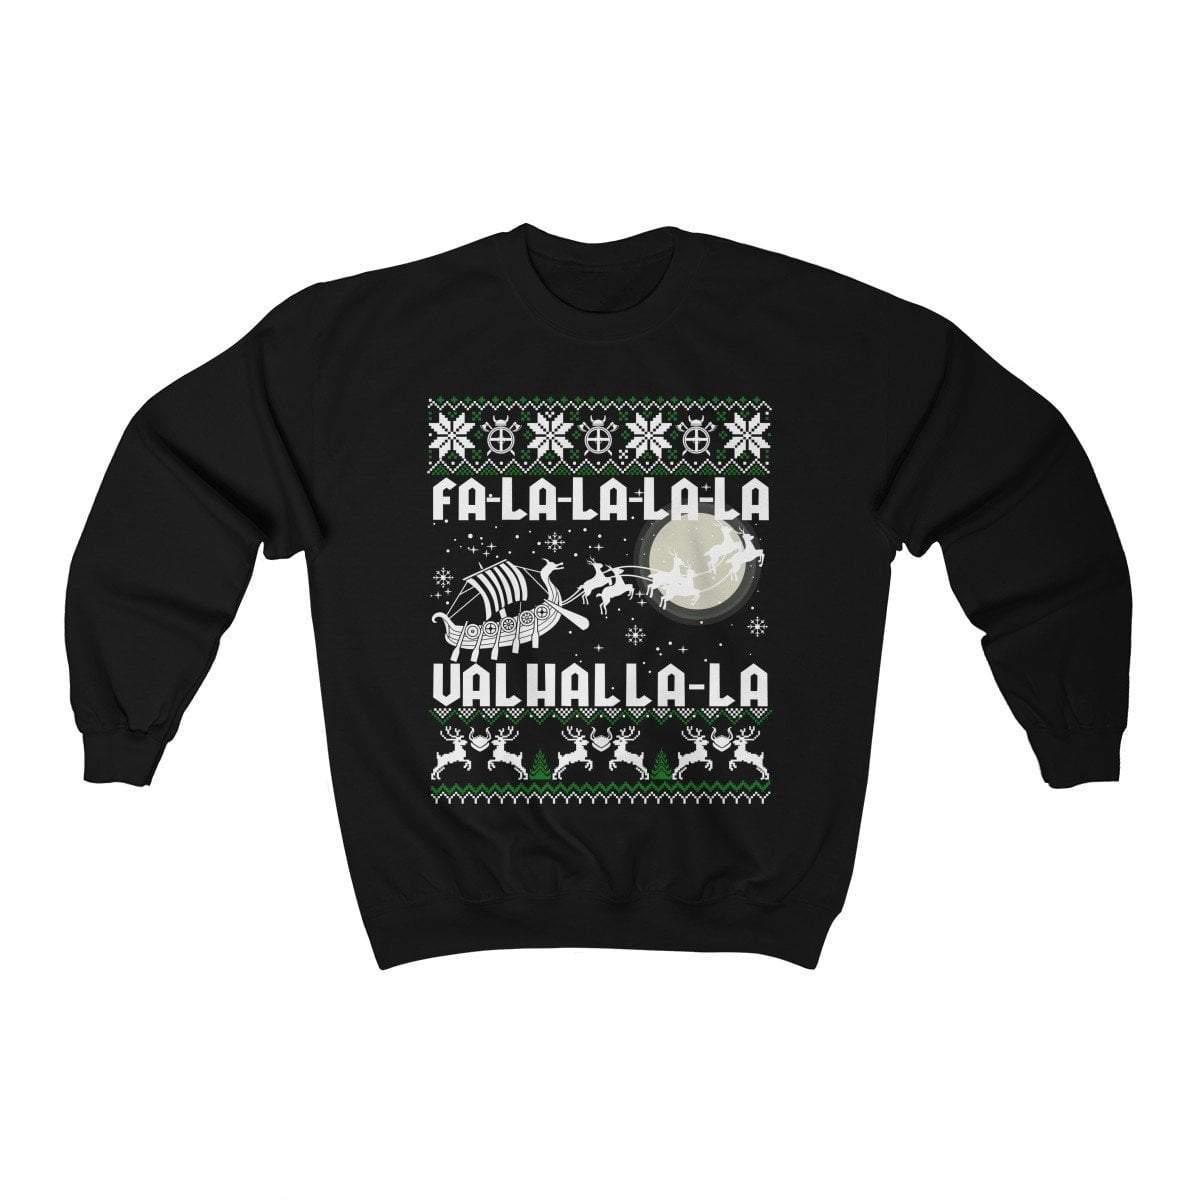 Sweatshirt Black / L Unisex Viking Drakkar Fa-La-La Valhalla Christmas Holiday Sweater Ancient Treasures Ancientreasures Viking Odin Thor Mjolnir Celtic Ancient Egypt Norse Norse Mythology